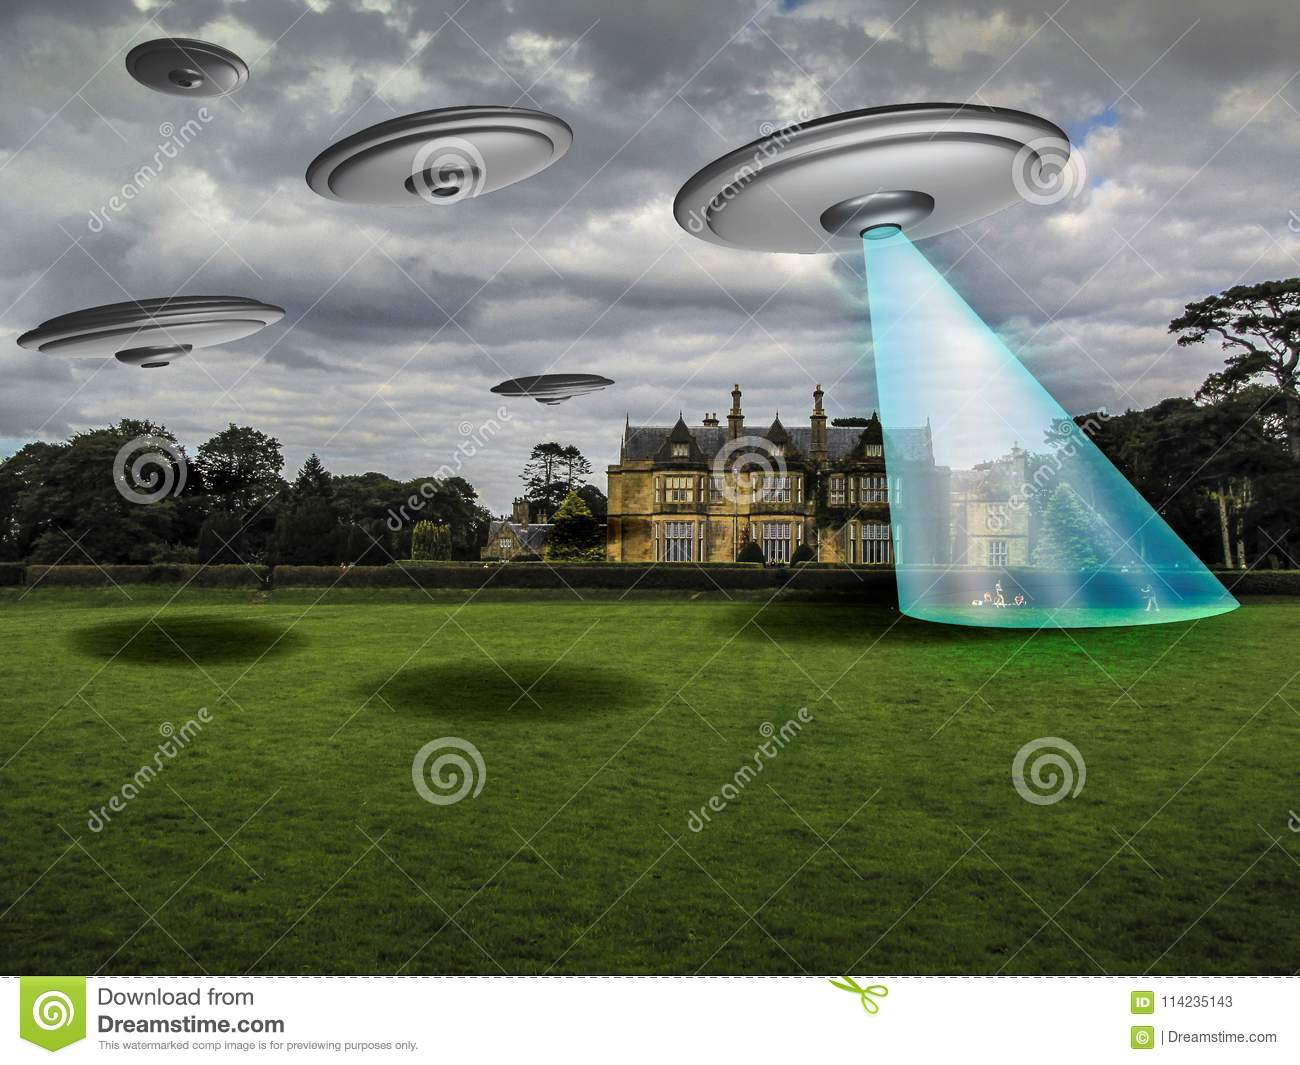 UFO: alien invasion and abduction